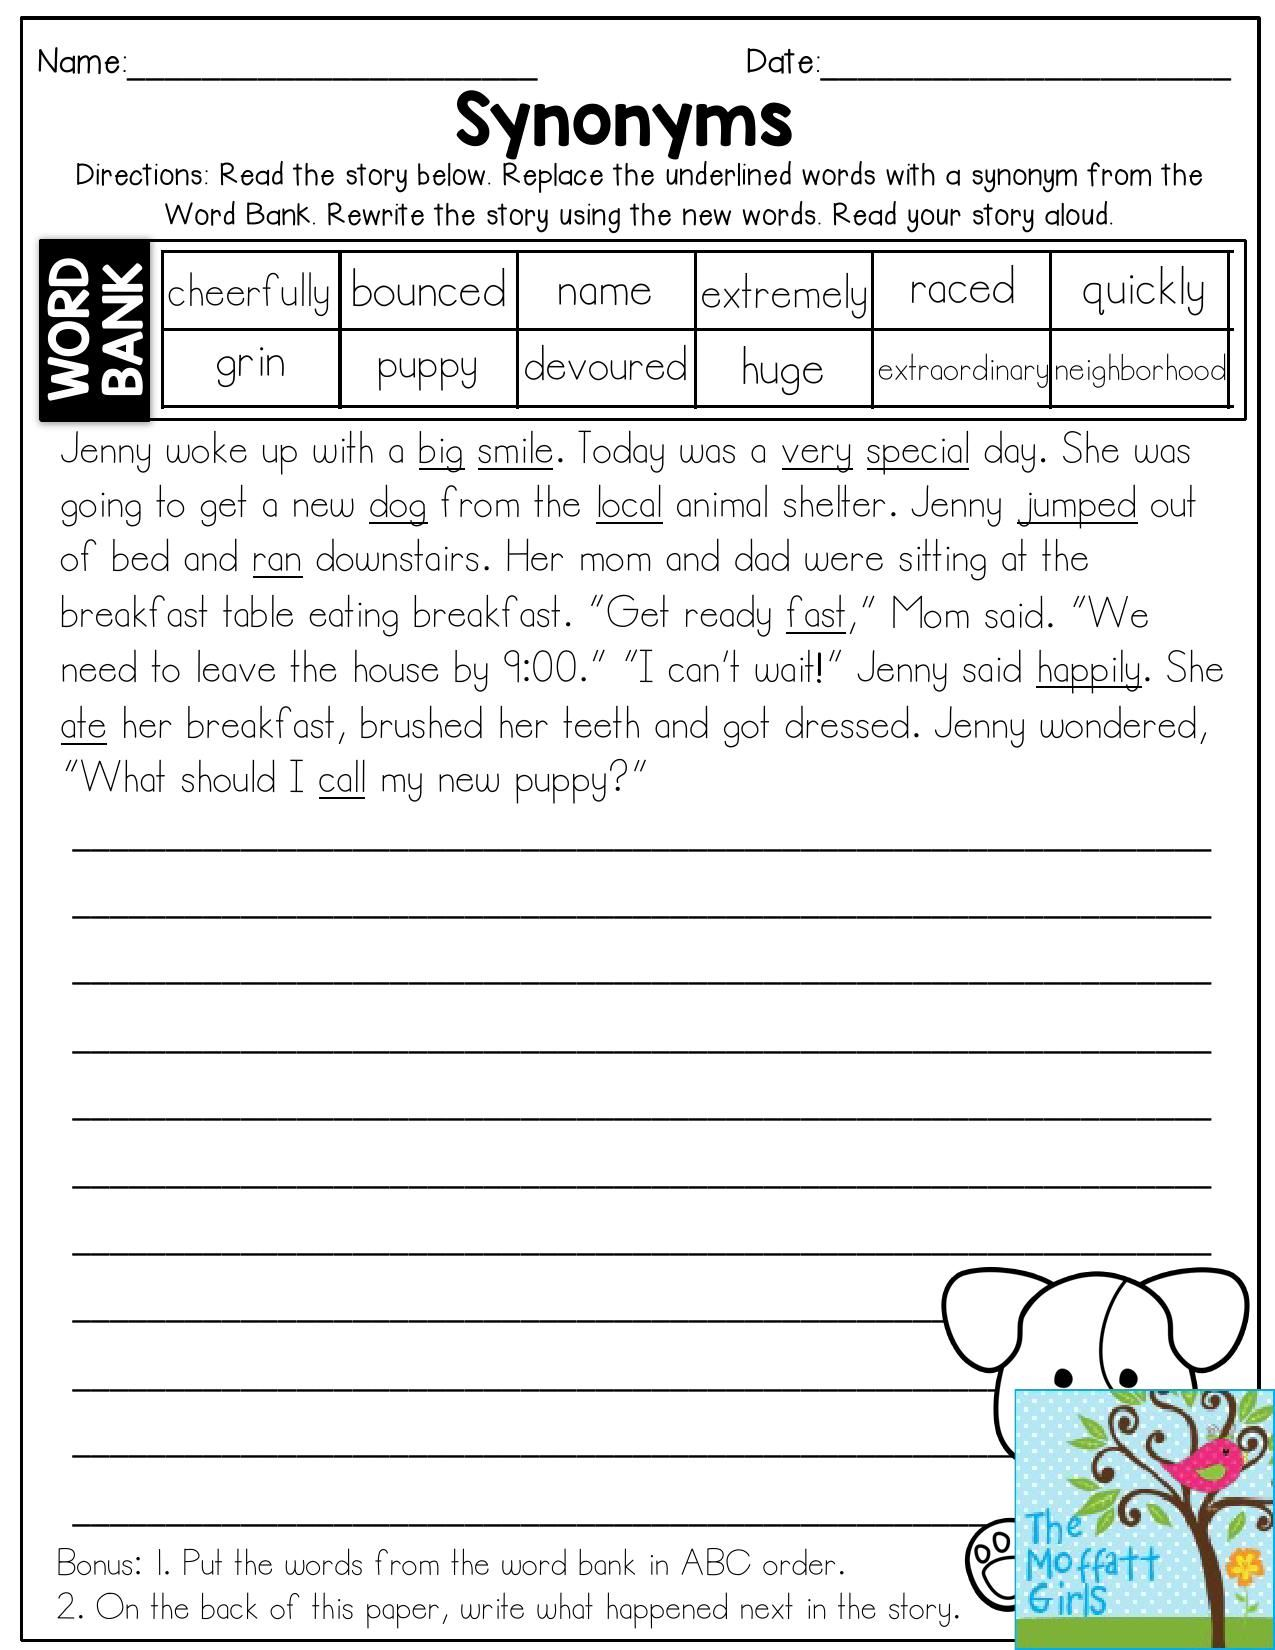 Worksheets Synonyms Words synonyms read the story and replace underlined words with then rewrite the